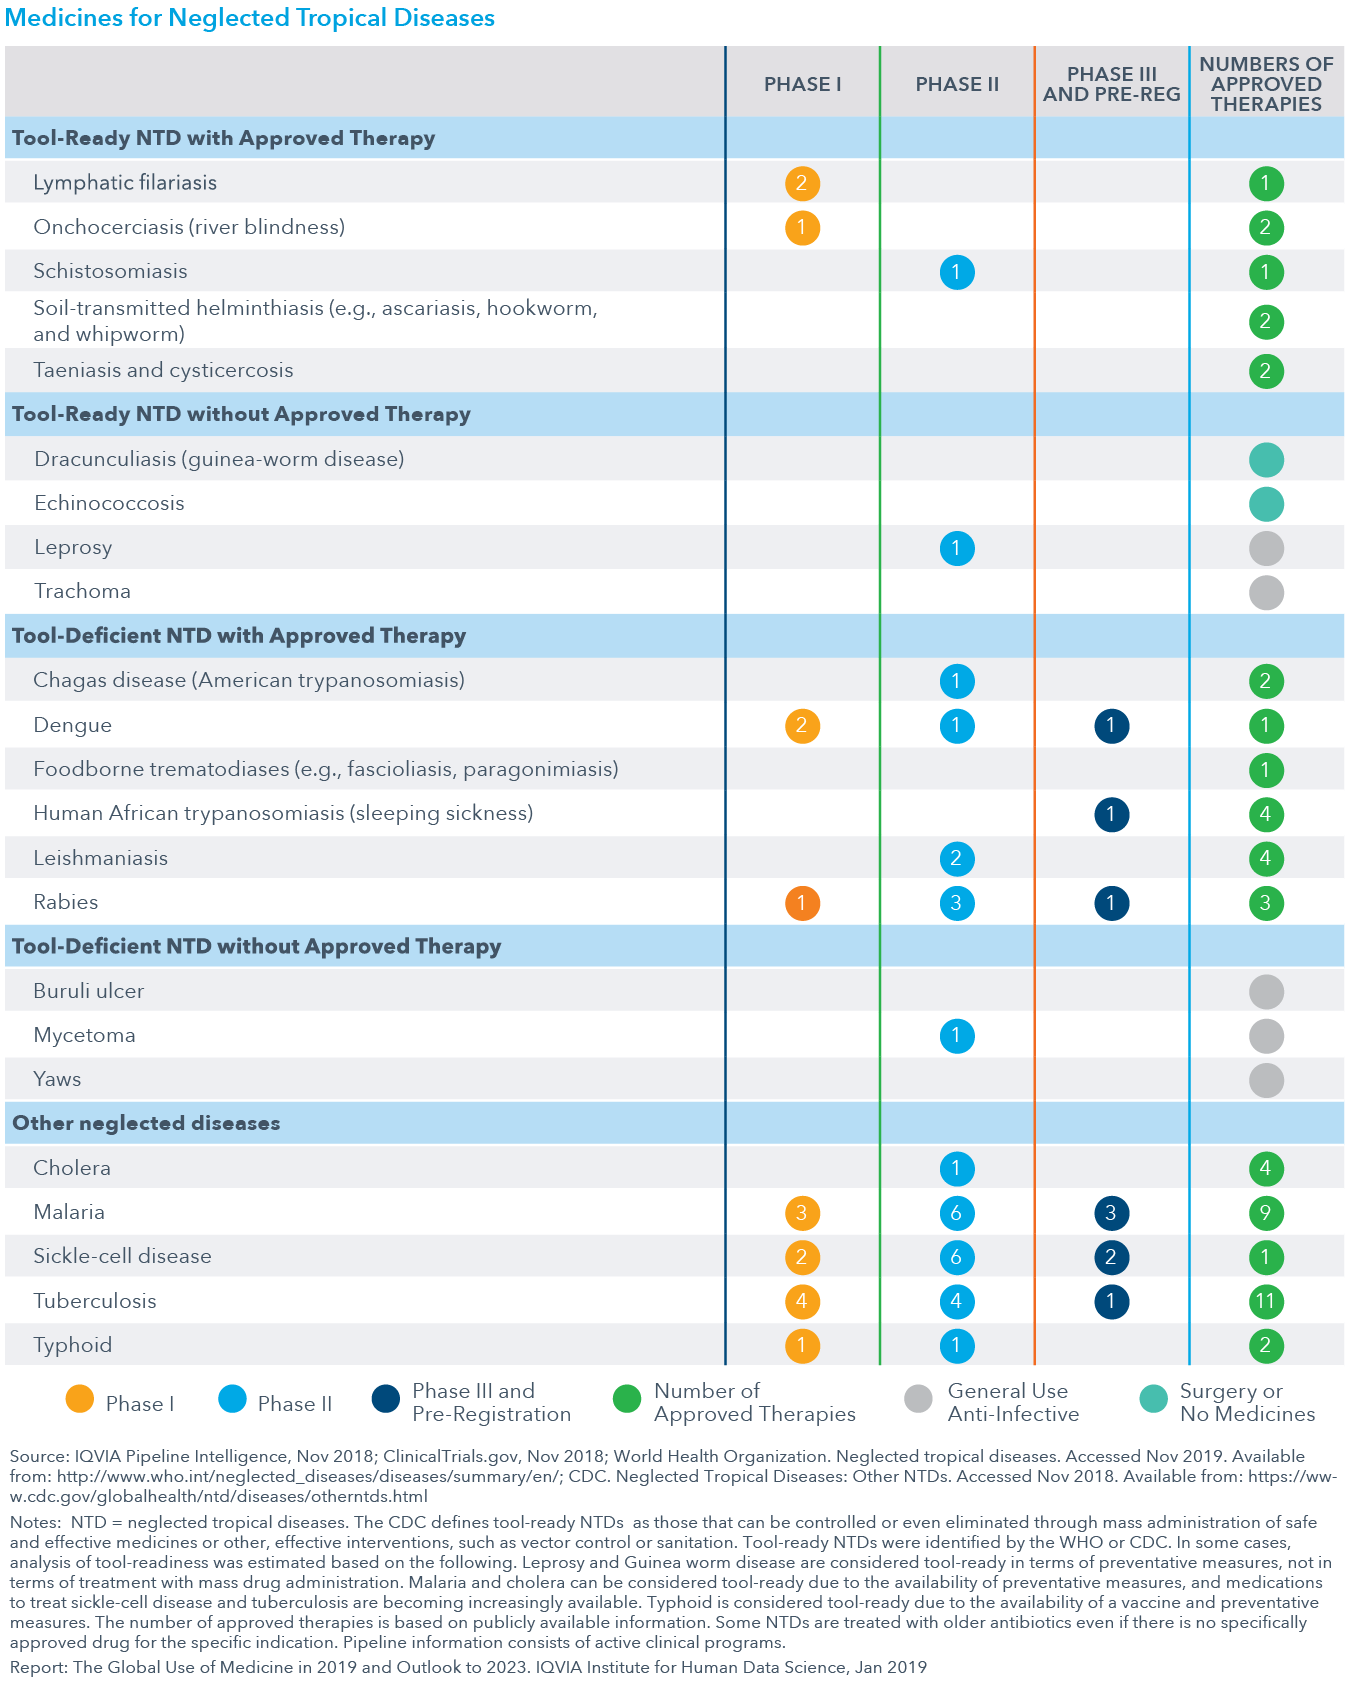 Chart 24: Medicines for Neglected Tropical Diseases